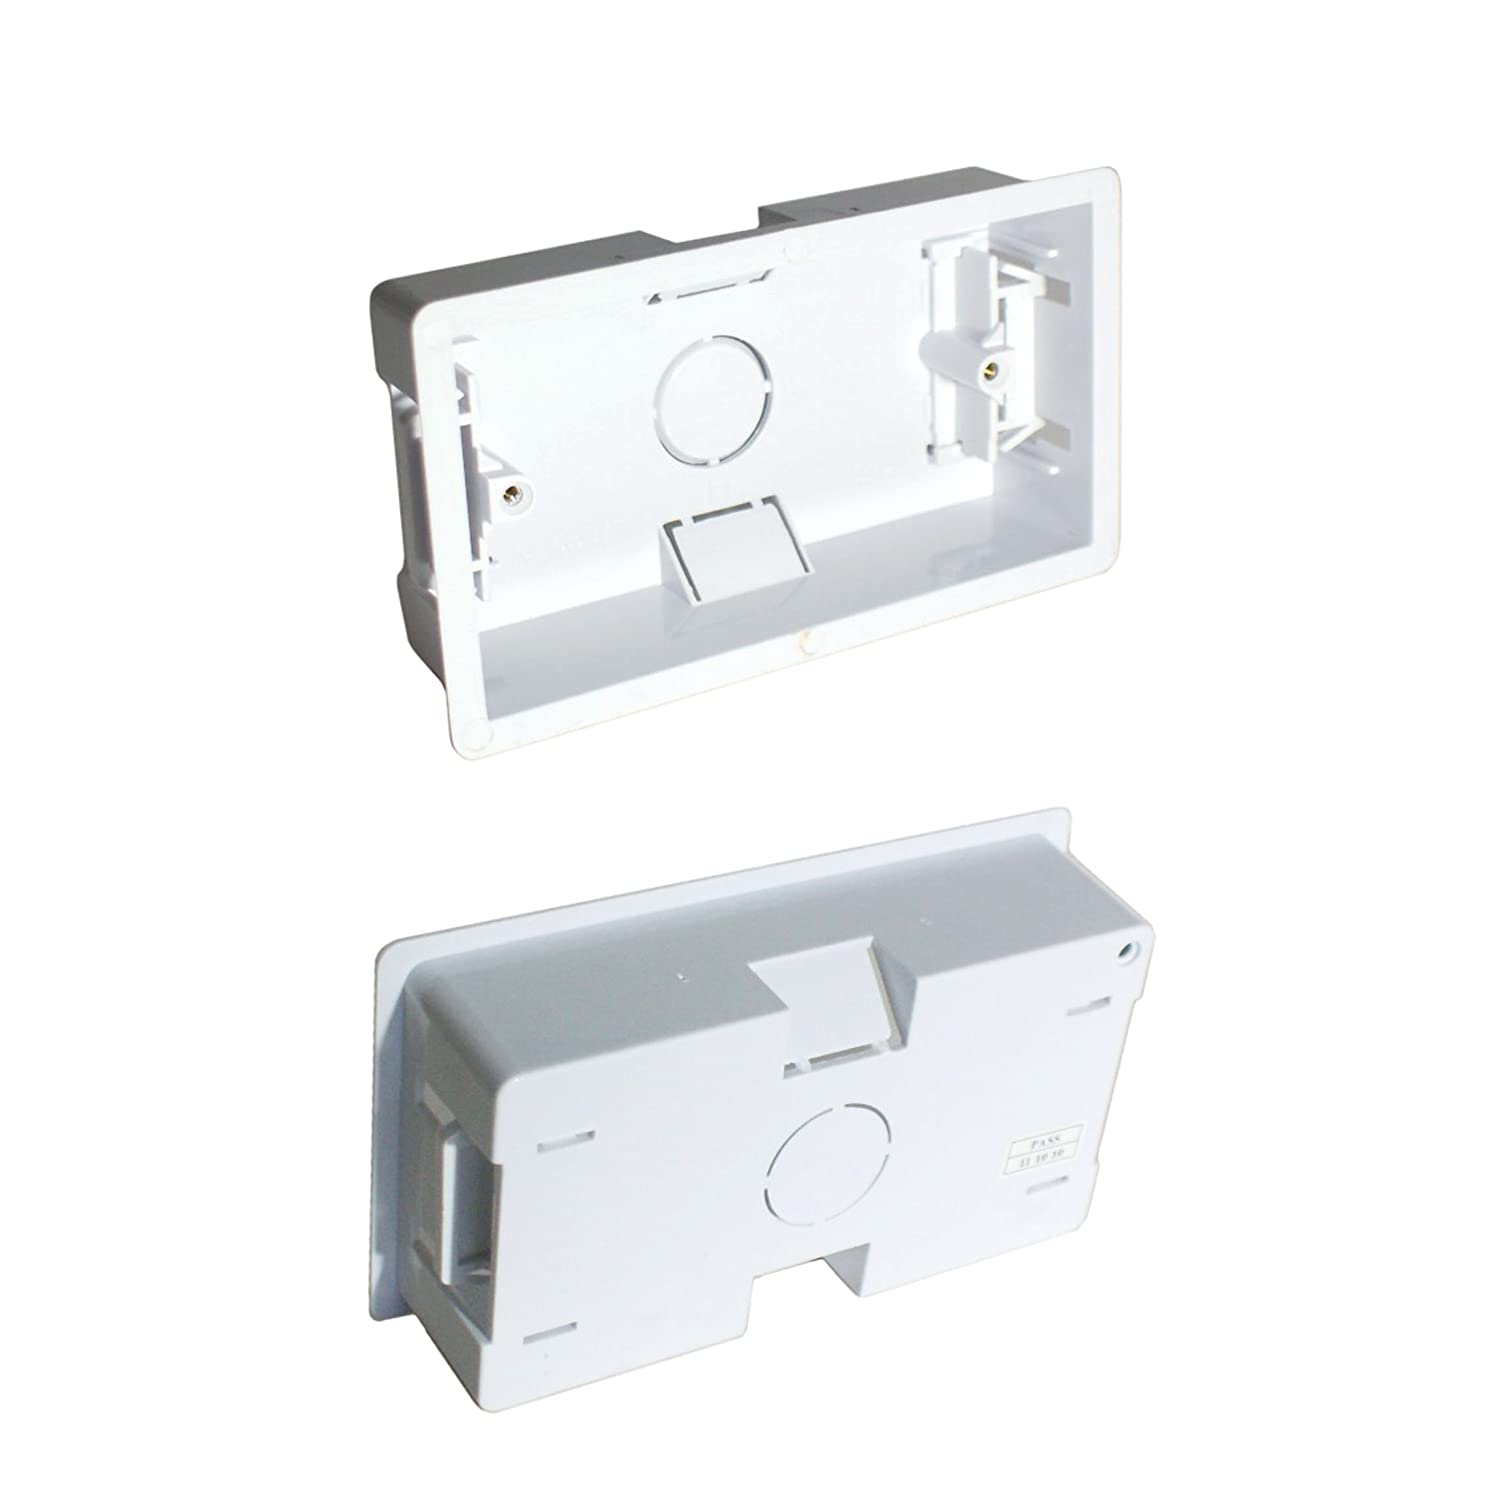 Loops 35mm Deep Double/Twin Plastic Dry Lining Back Box - 1 Gang Wall Flush Mount Pattress 863